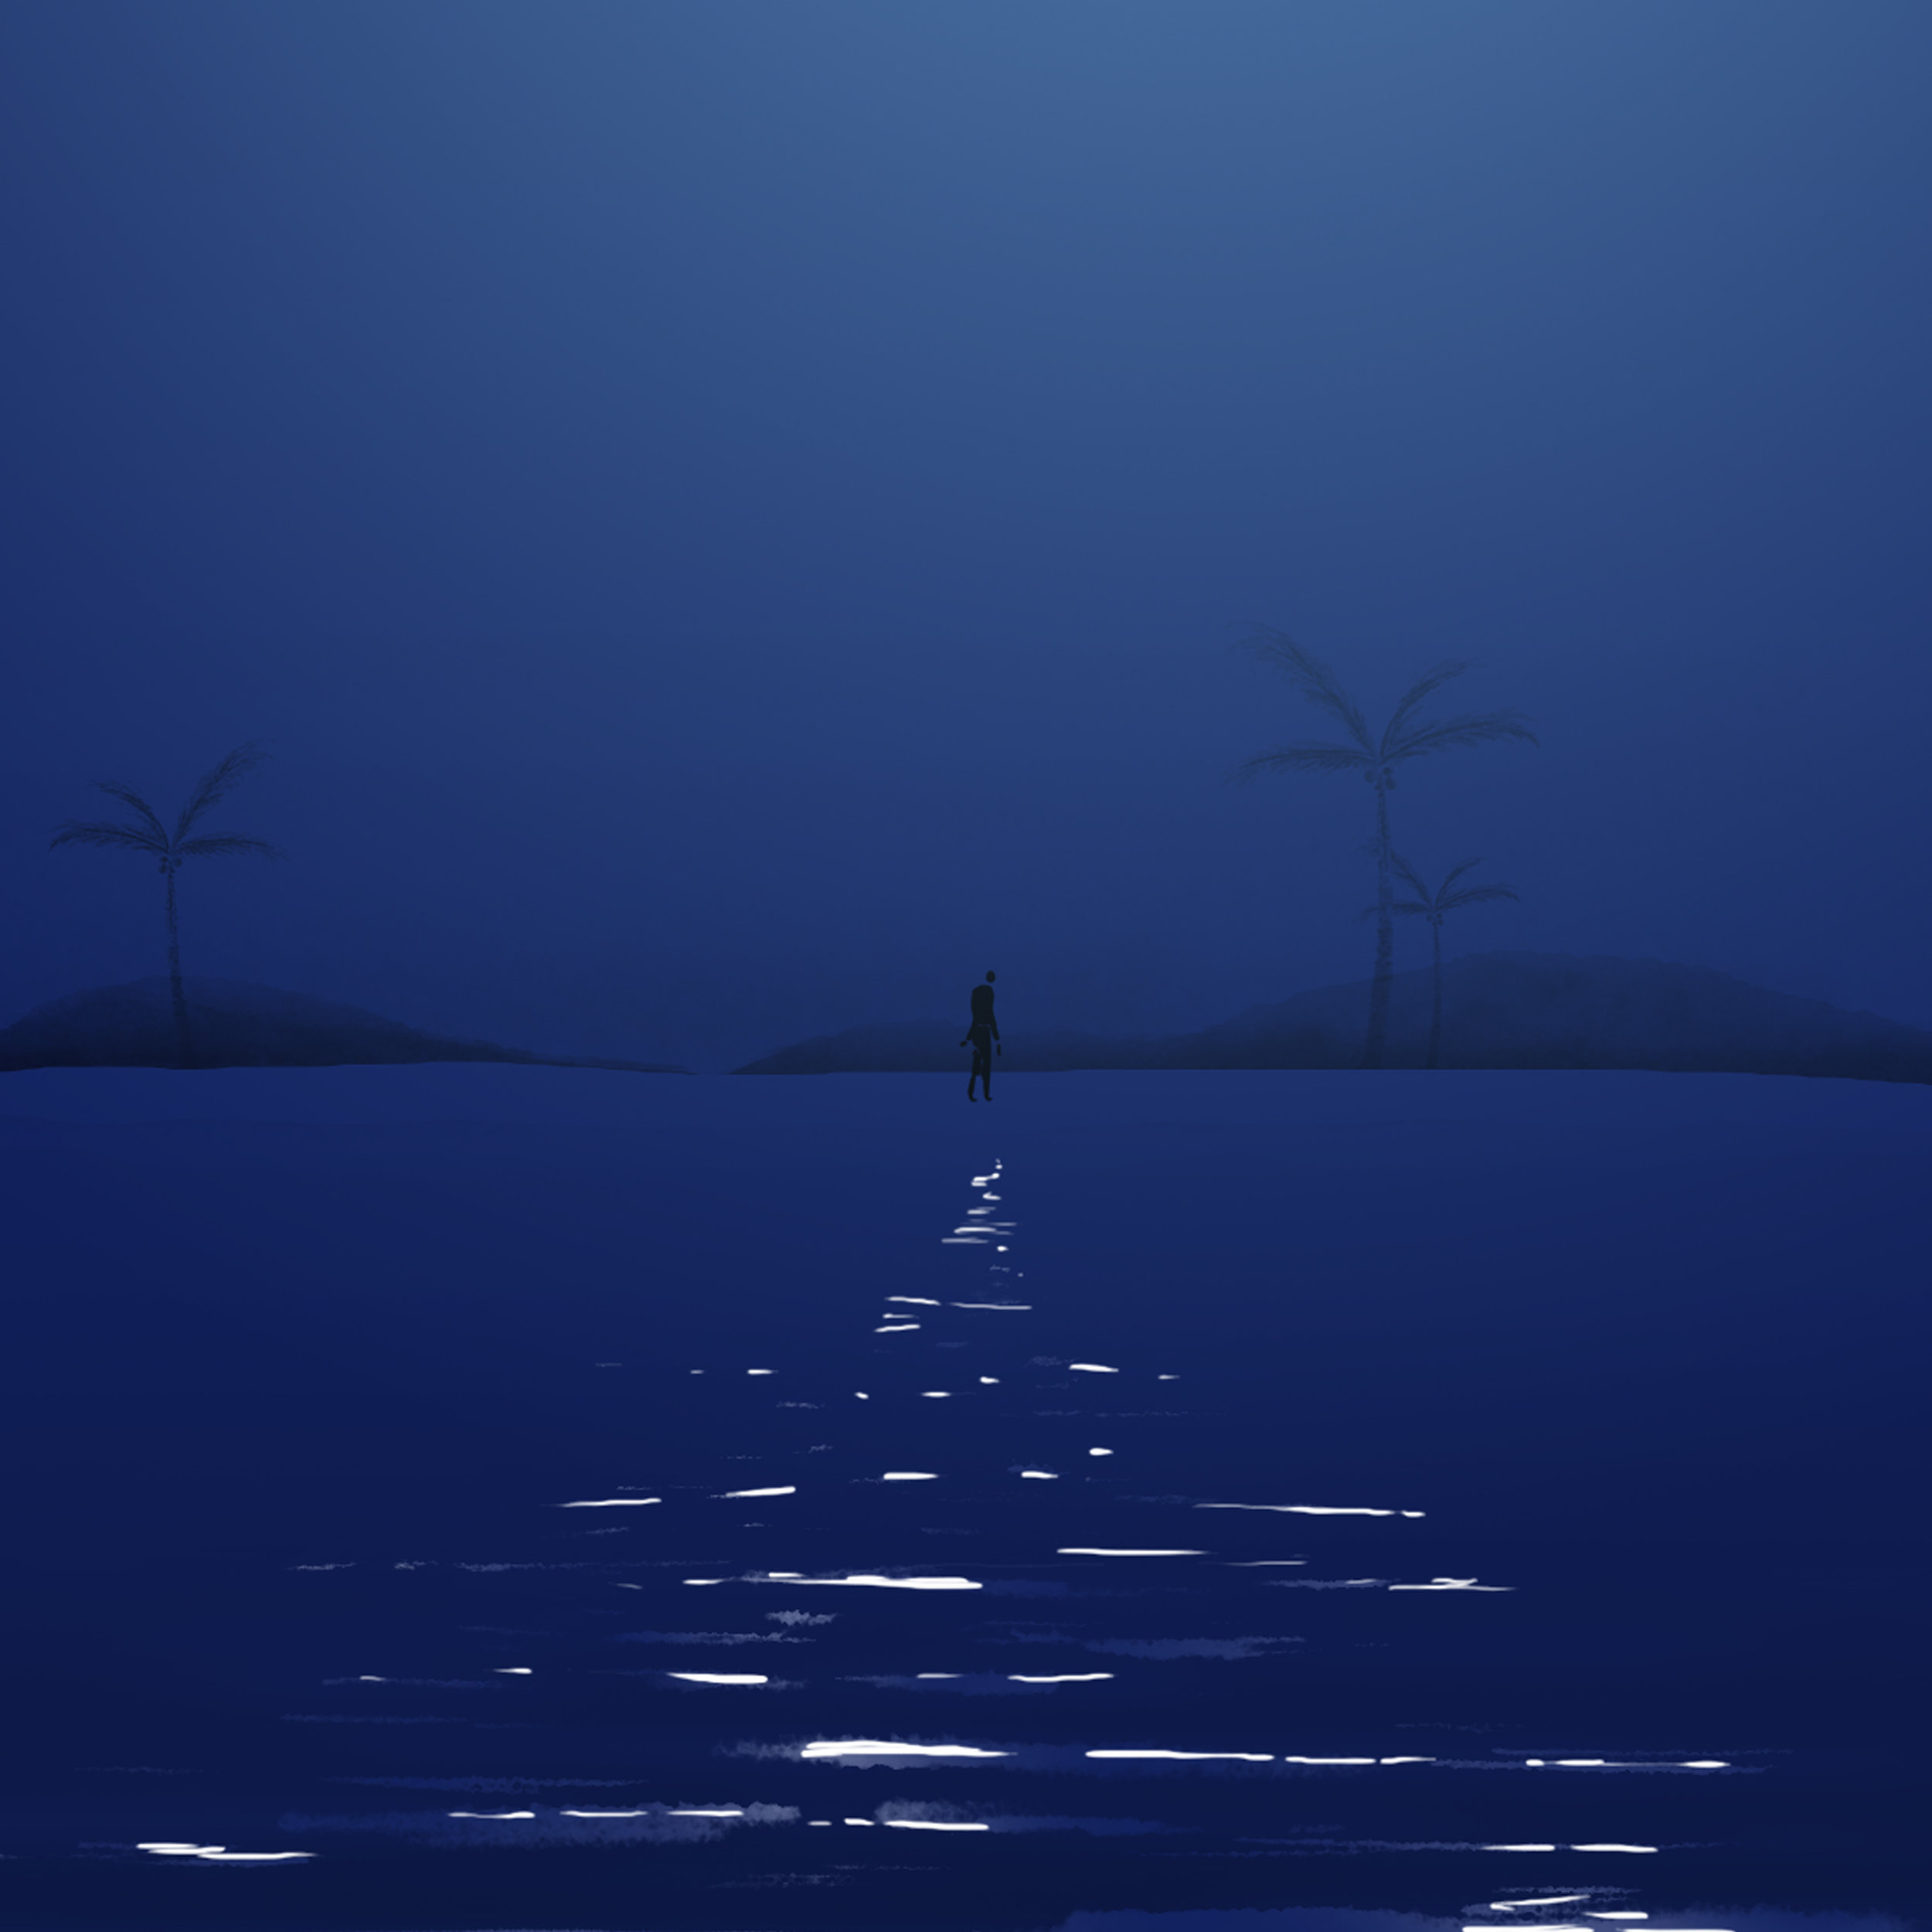 Beach_03Night.jpg